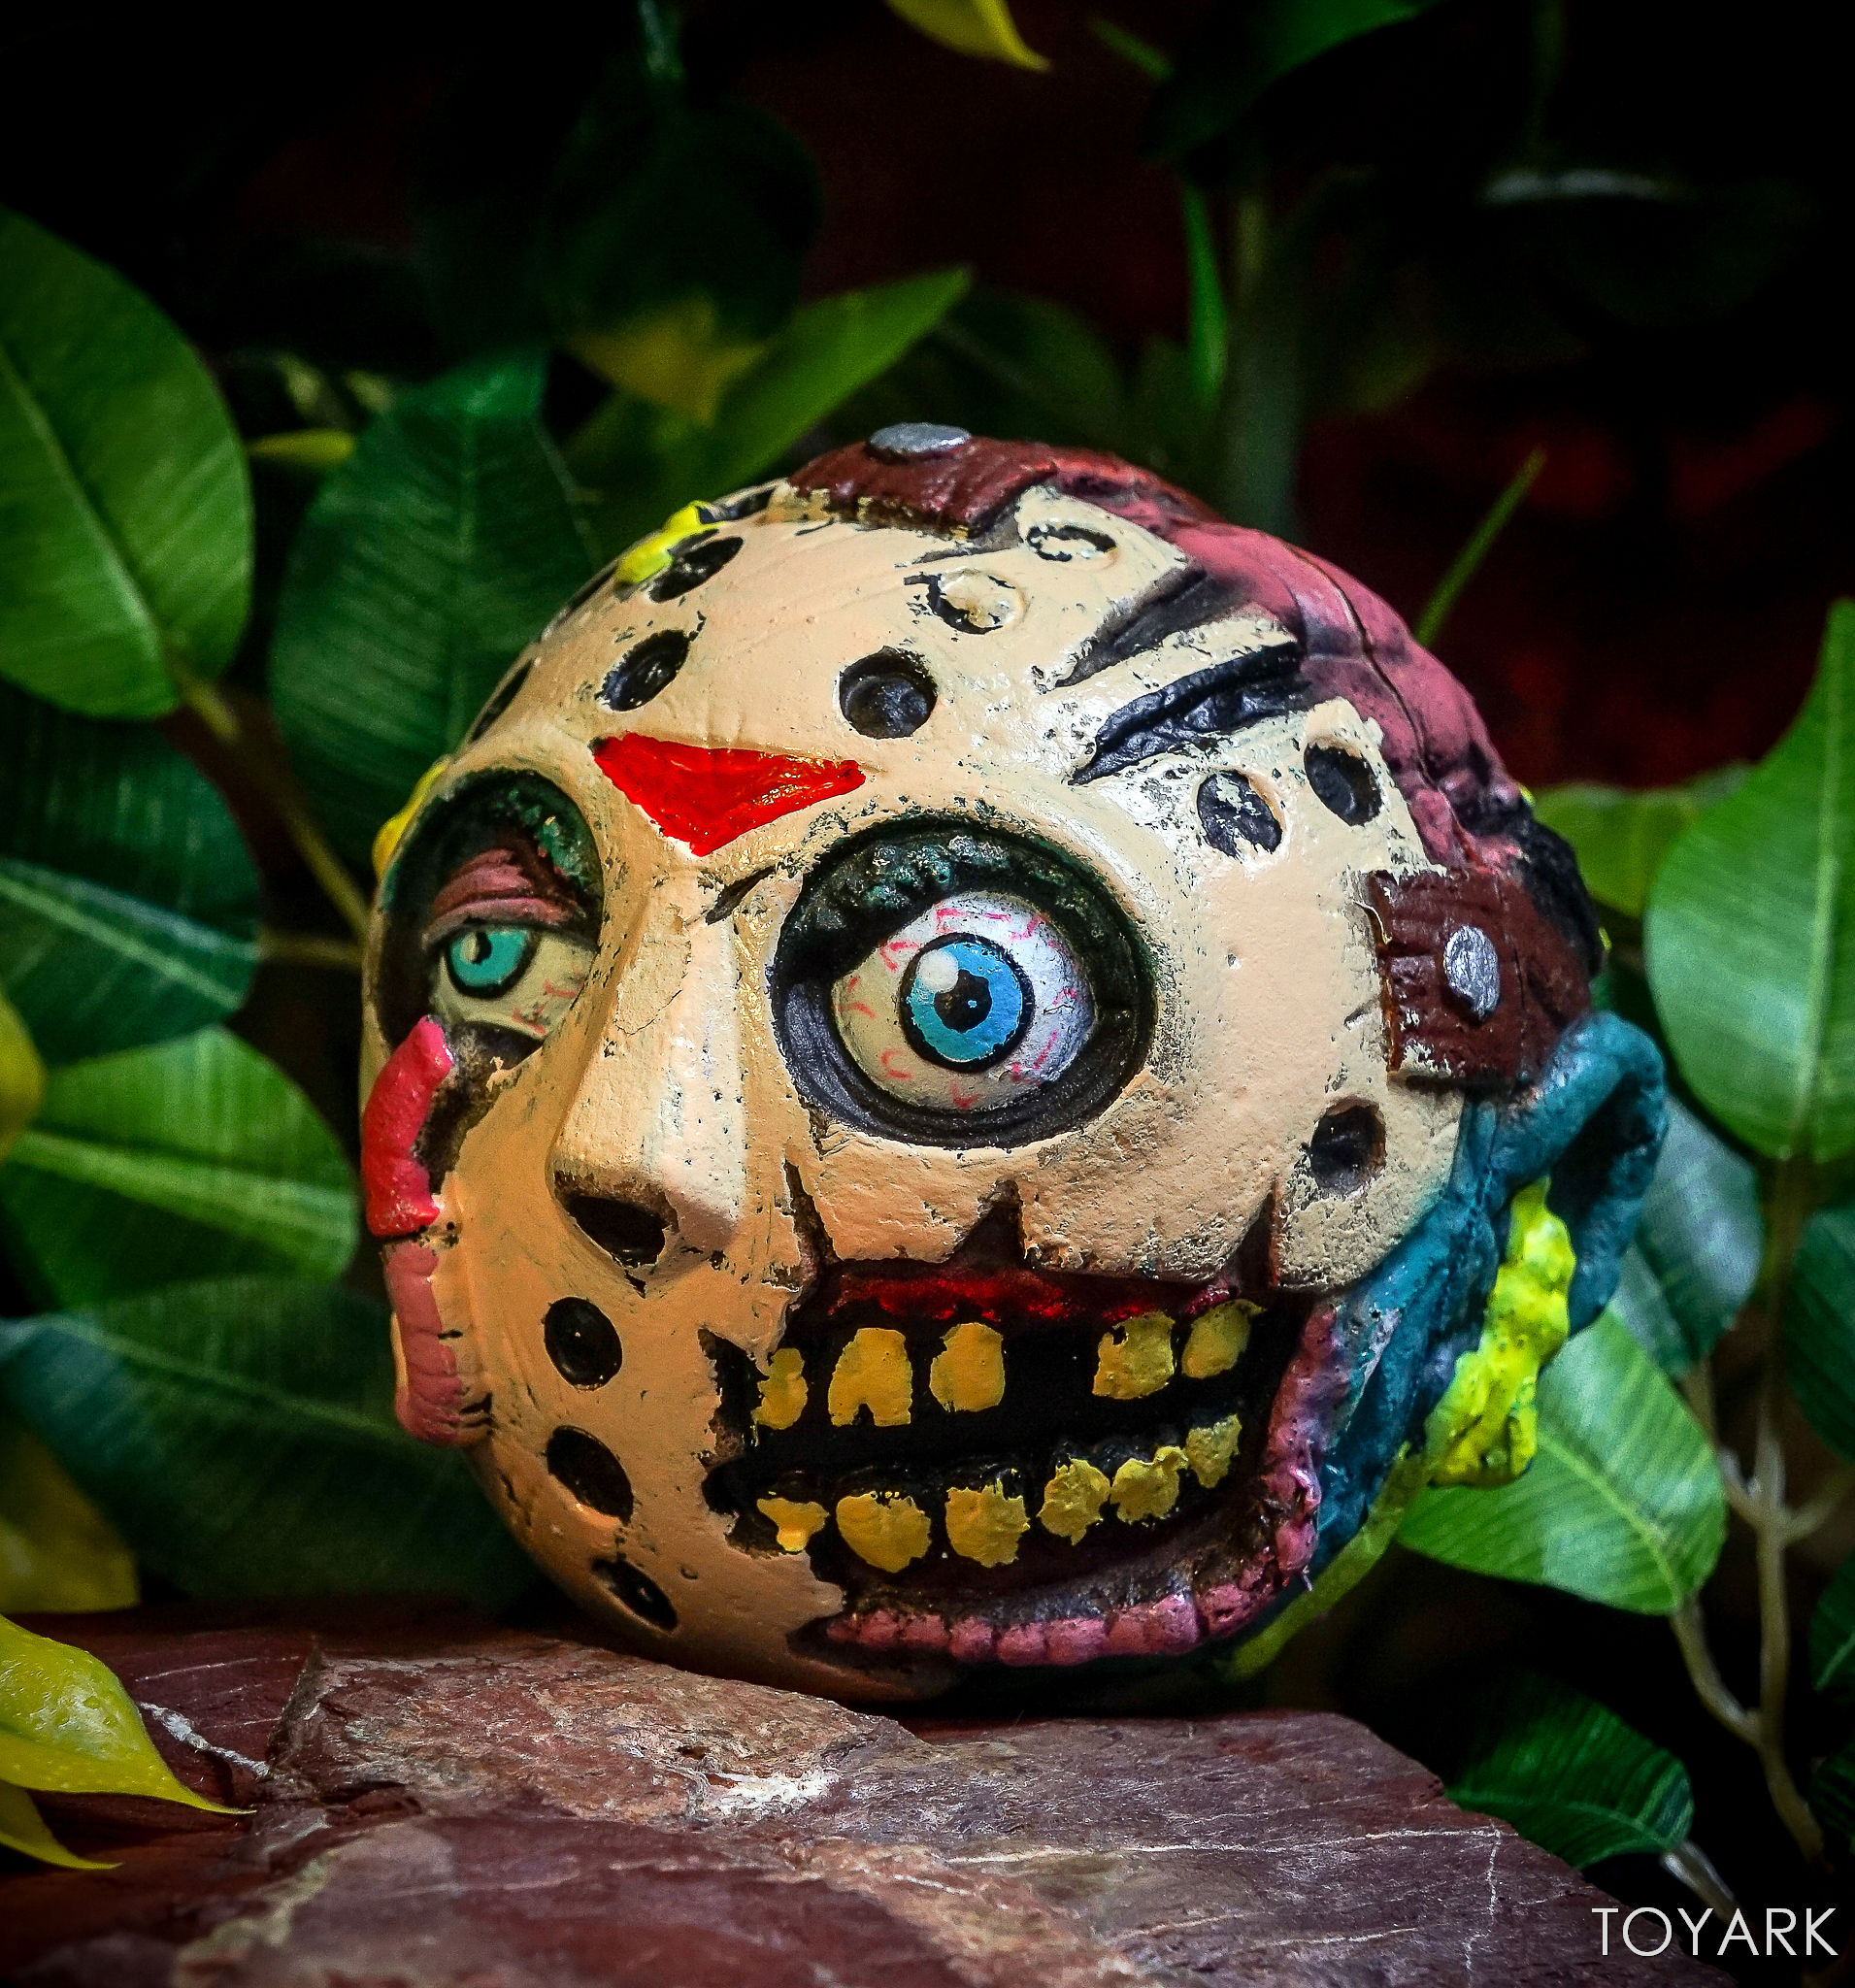 http://news.toyark.com/wp-content/uploads/sites/4/2017/09/Kidrobot-Horror-and-Sci-Fi-Madballs-036.jpg